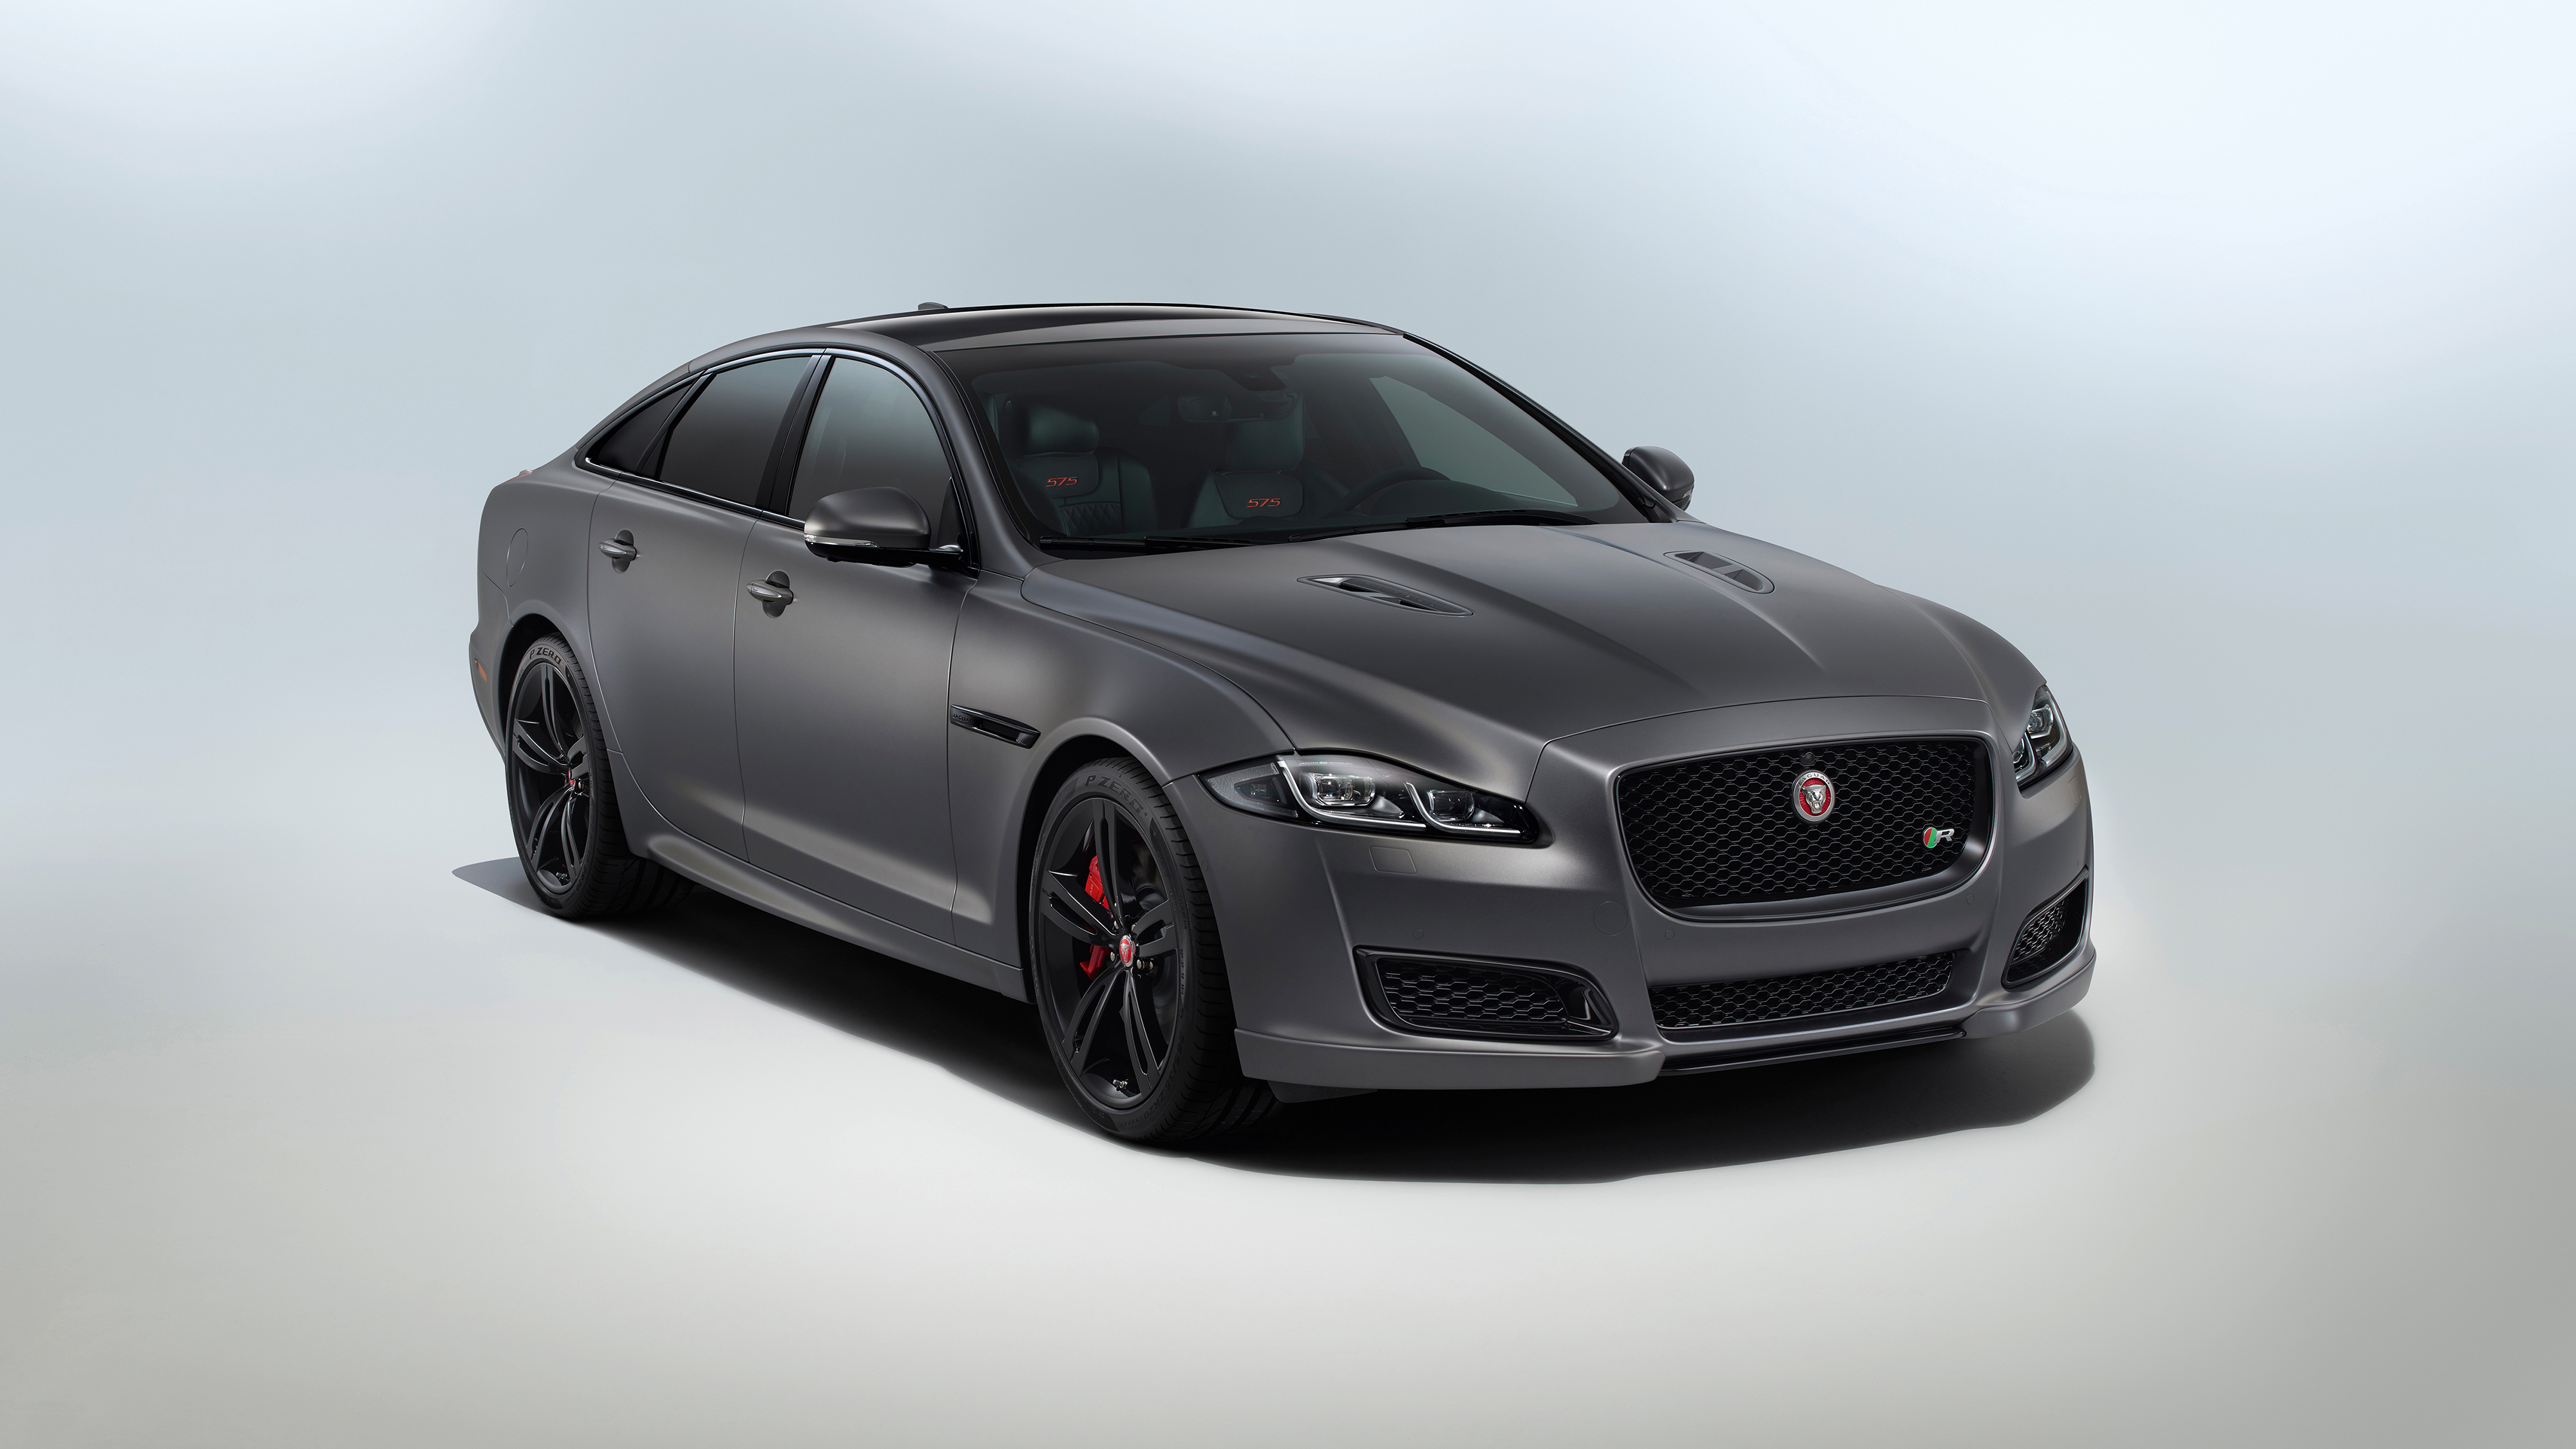 2018 Jaguar Xjr575 4k Wallpaper Hd Car Wallpapers Id 8116